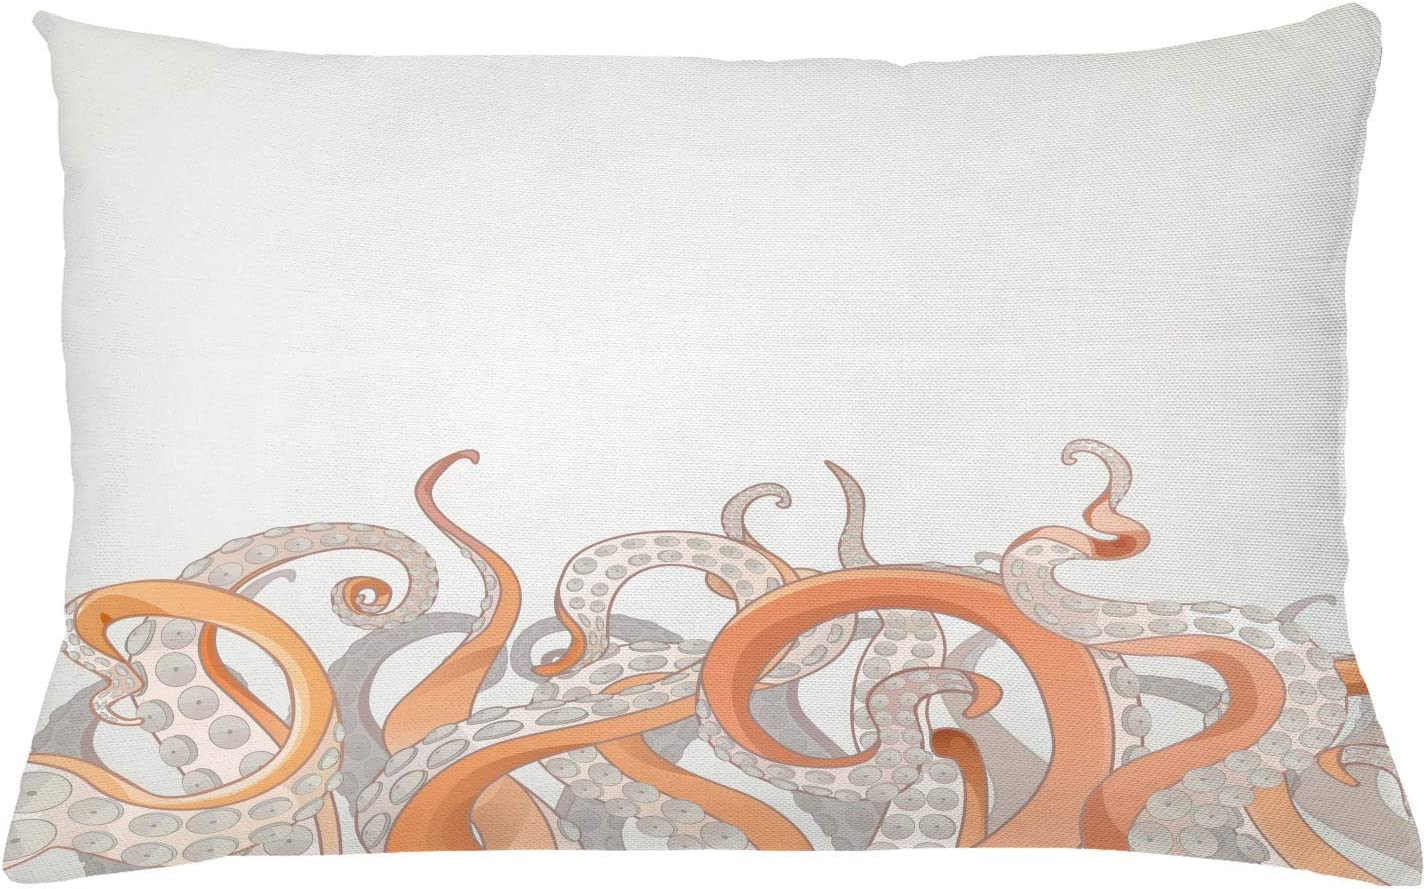 "Lunarable Octopus Throw Pillow Cushion Cover, Octopus Tentacles Background Underwater Marine Nature and Sea Creatures Nautical, Decorative Rectangle Accent Pillow Case, 26"" X 16"", Orange Grey"